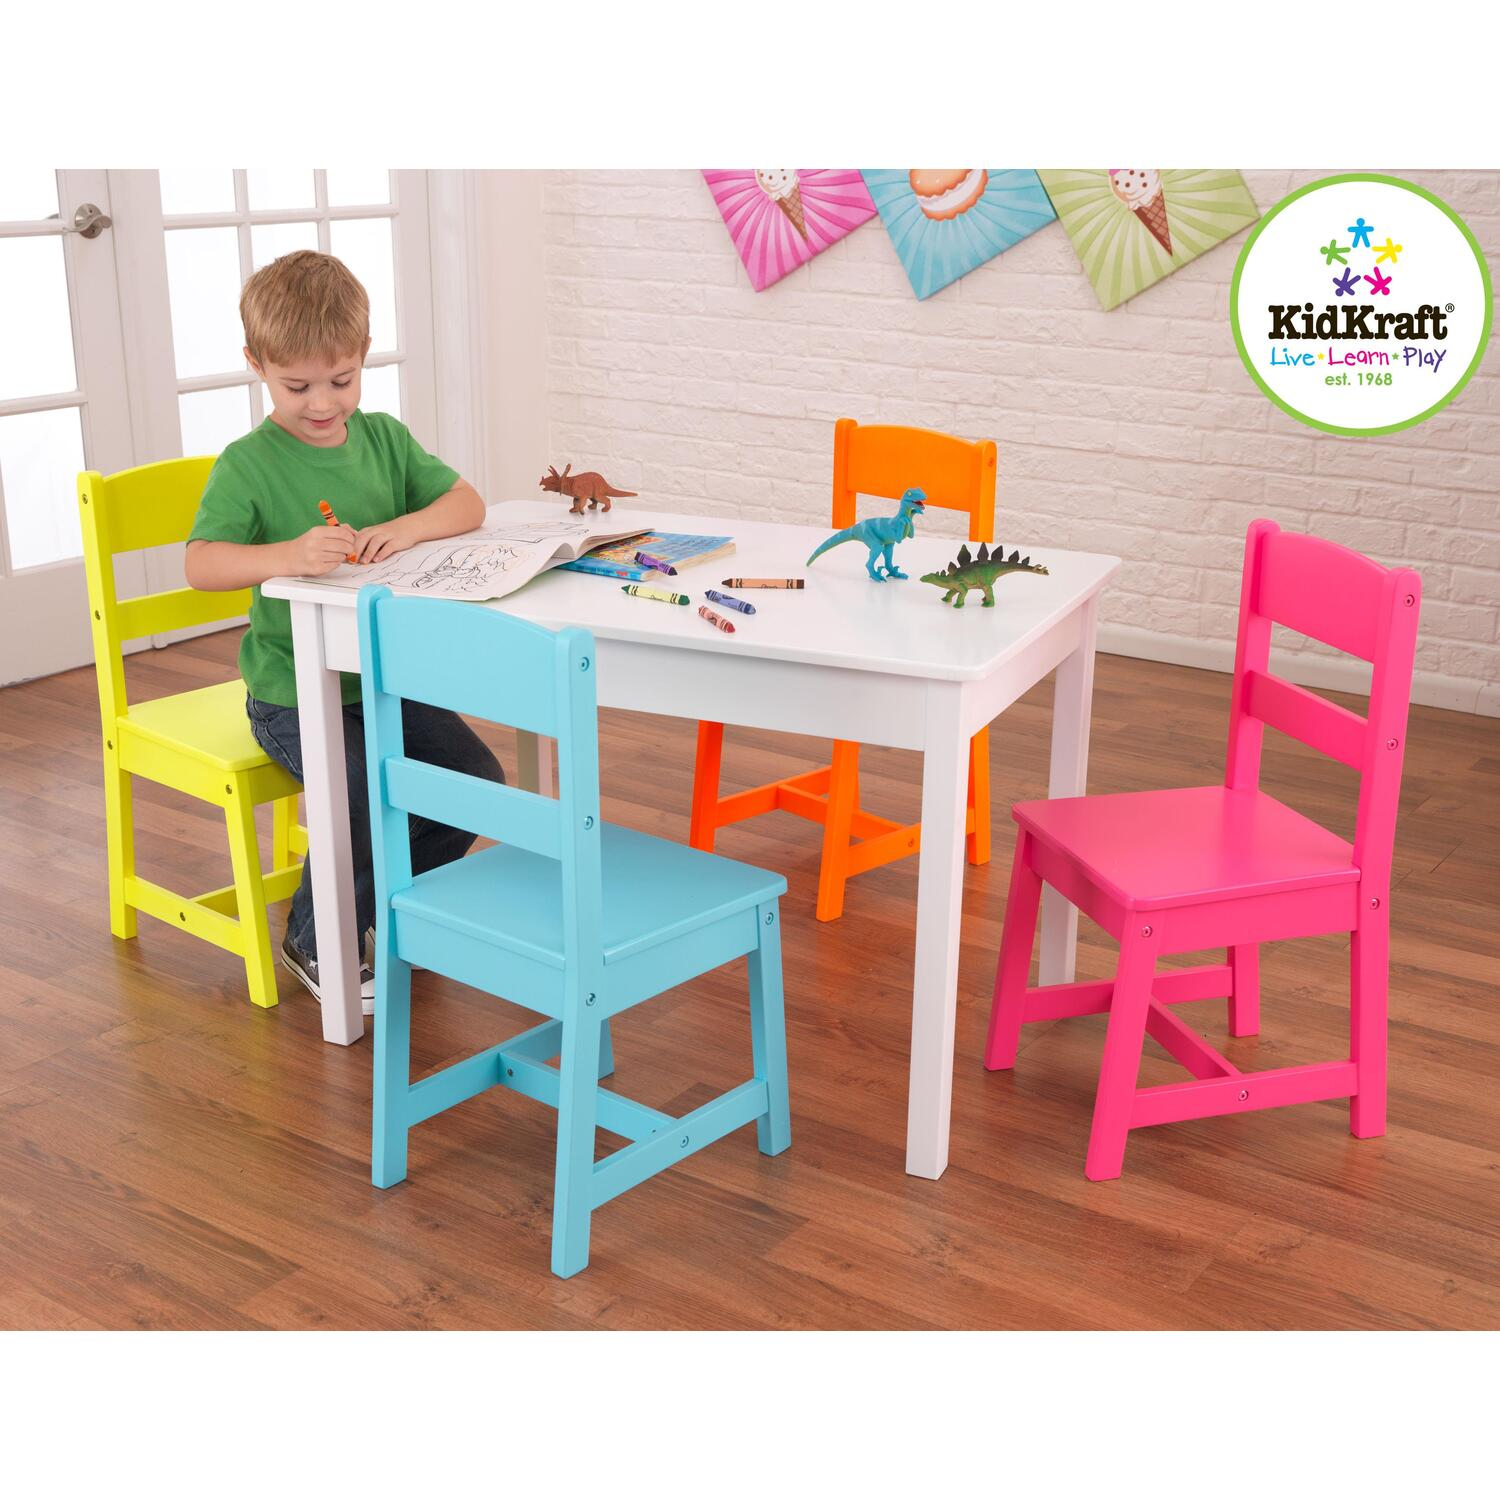 kidkraft highlighter table 4 chair set by oj commerce